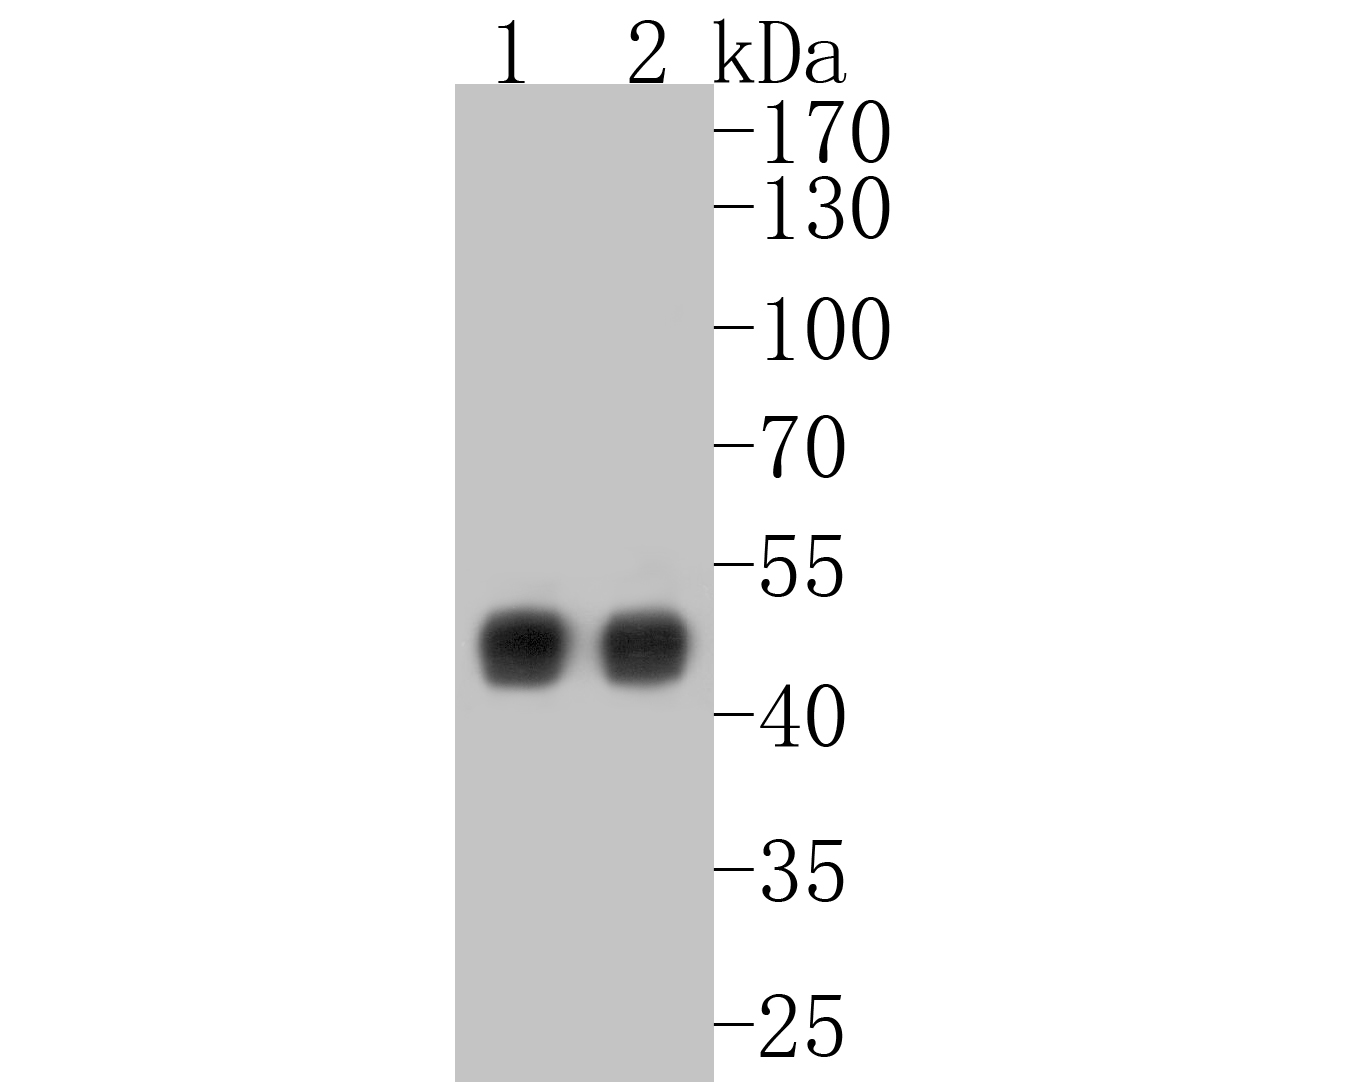 Western blot analysis of Cytokeratin 18 on different lysates. Proteins were transferred to a PVDF membrane and blocked with 5% BSA in PBS for 1 hour at room temperature. The primary antibody (ET1603-8, 1/500) was used in 5% BSA at room temperature for 2 hours. Goat Anti-Rabbit IgG - HRP Secondary Antibody (HA1001) at 1:5,000 dilution was used for 1 hour at room temperature.<br />  Positive control: <br />  Lane 1: A431 cell lysate<br />  Lane 2: human lung tissue lysate